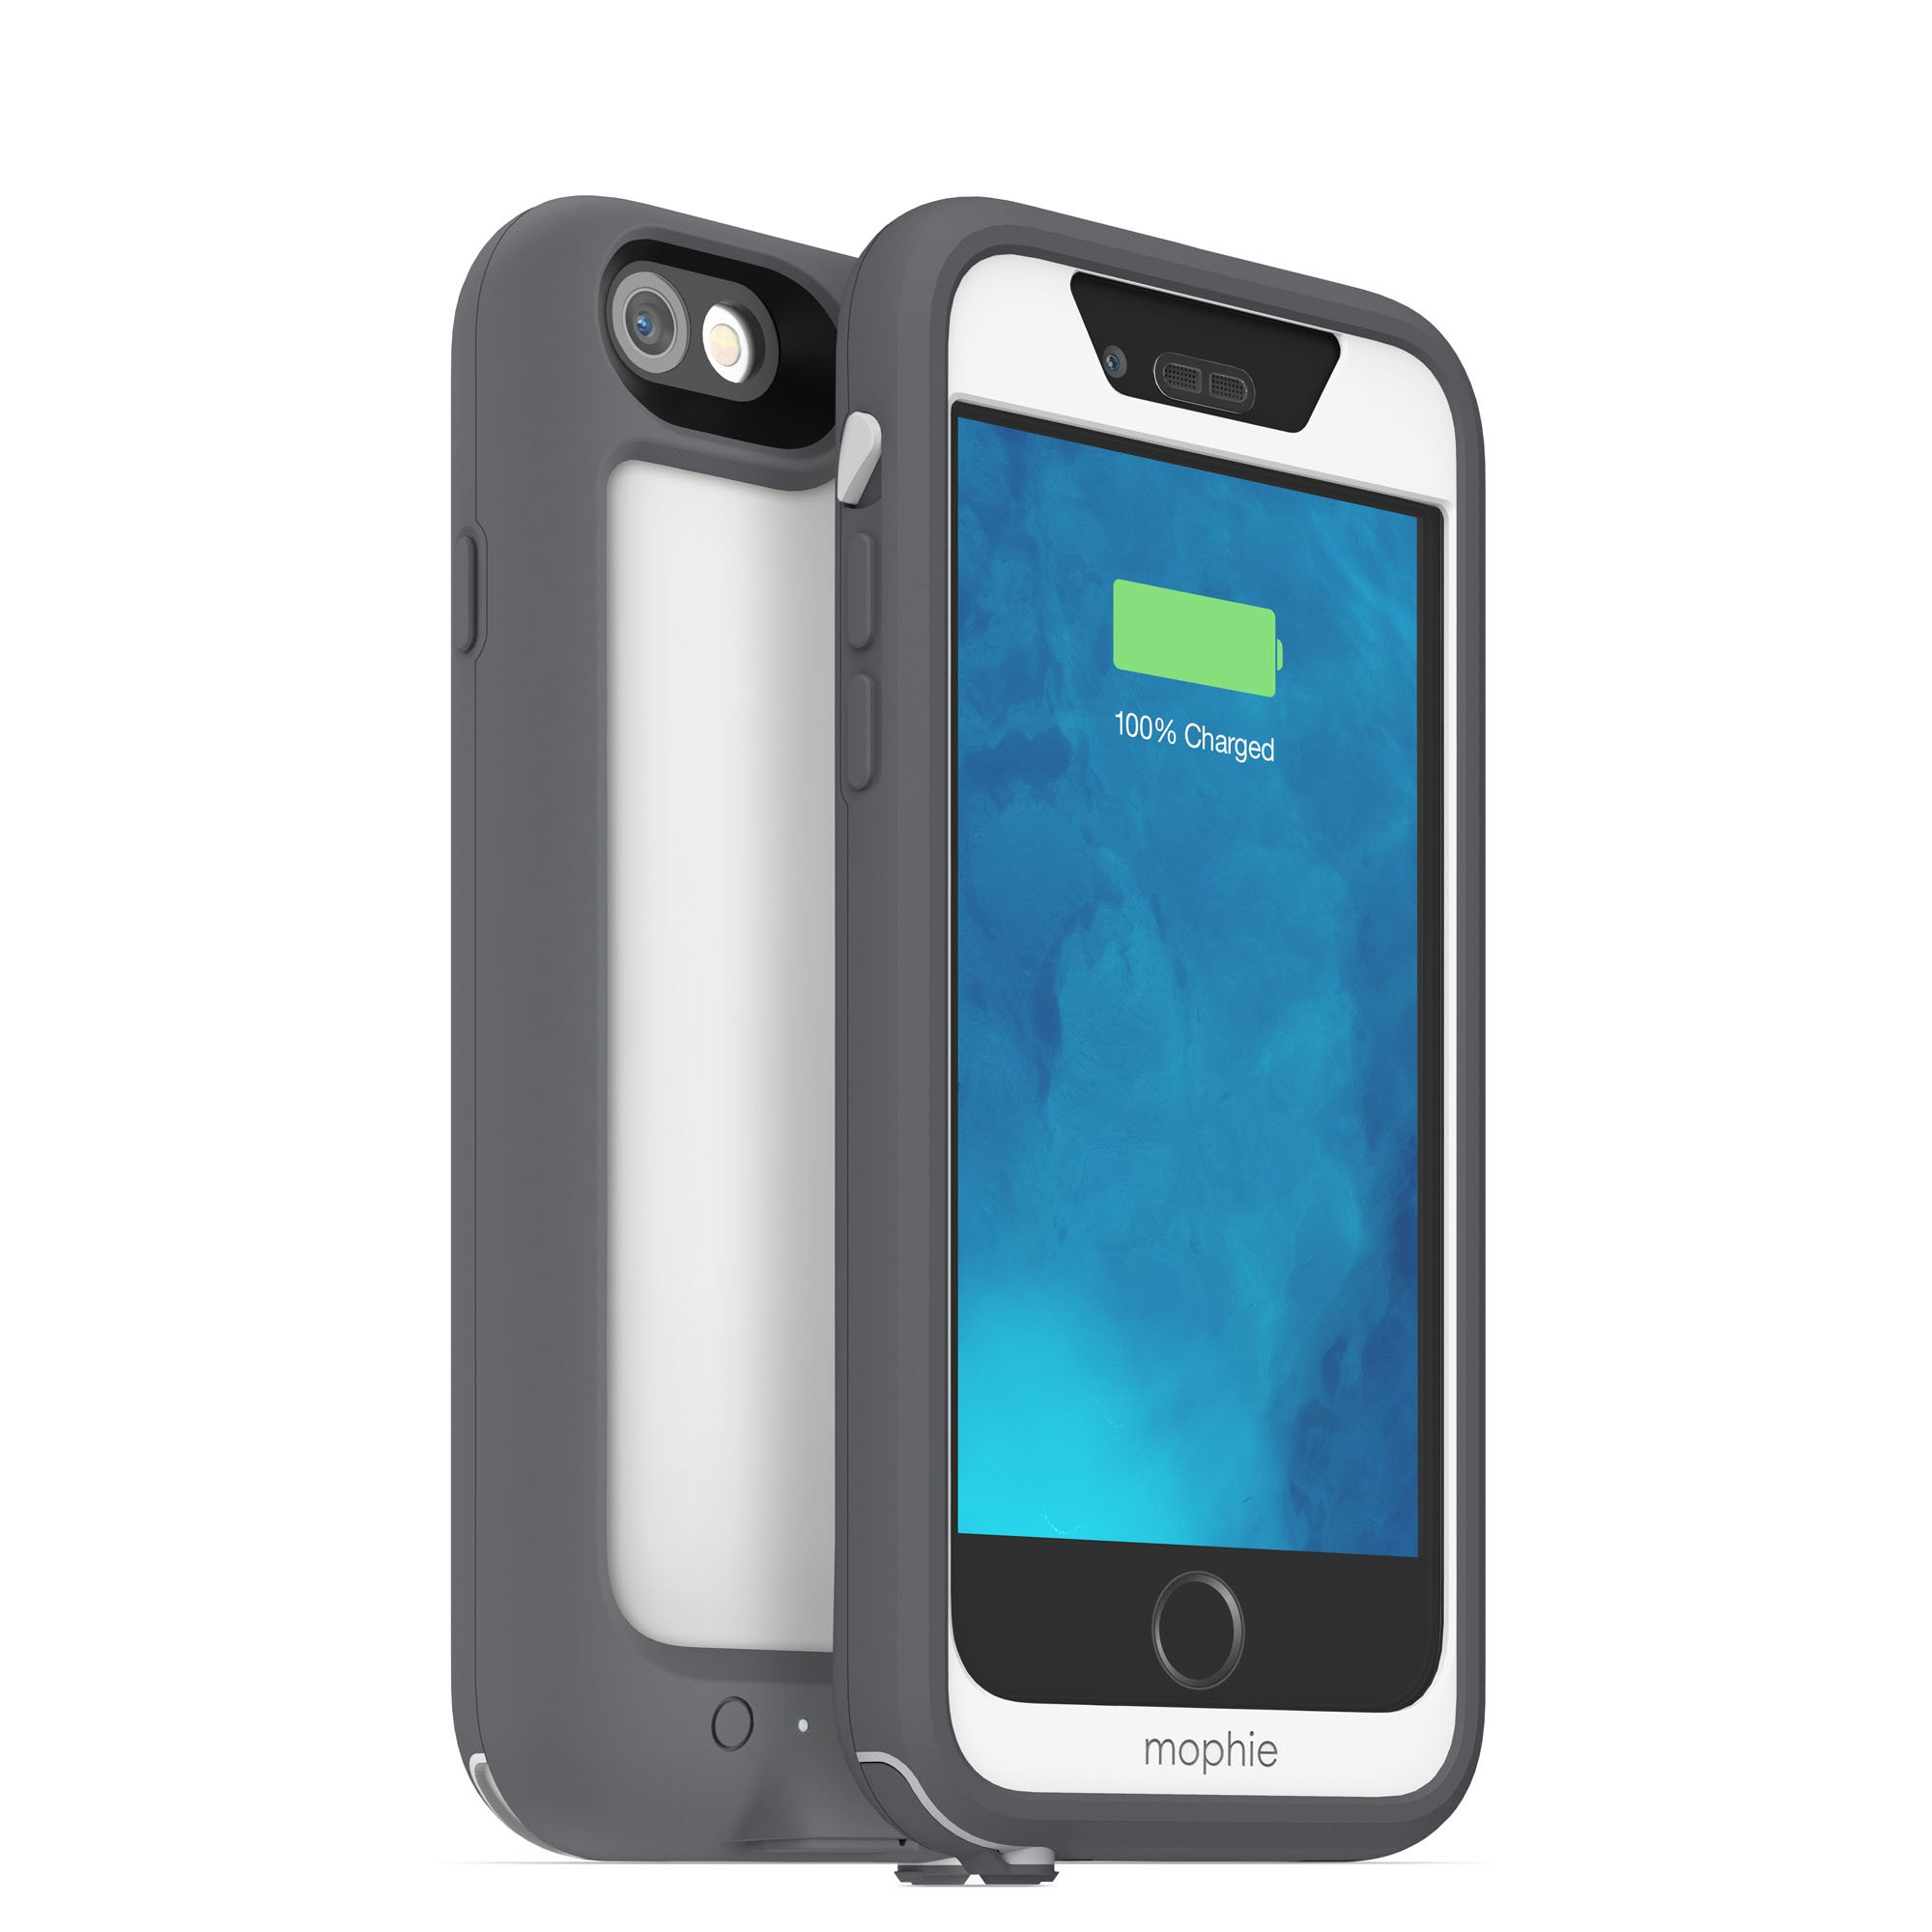 mophie juice pack H2PRO - Waterproof Mobile Protective Battery Pack Case for iPhone 6/6s - White by mophie (Image #4)